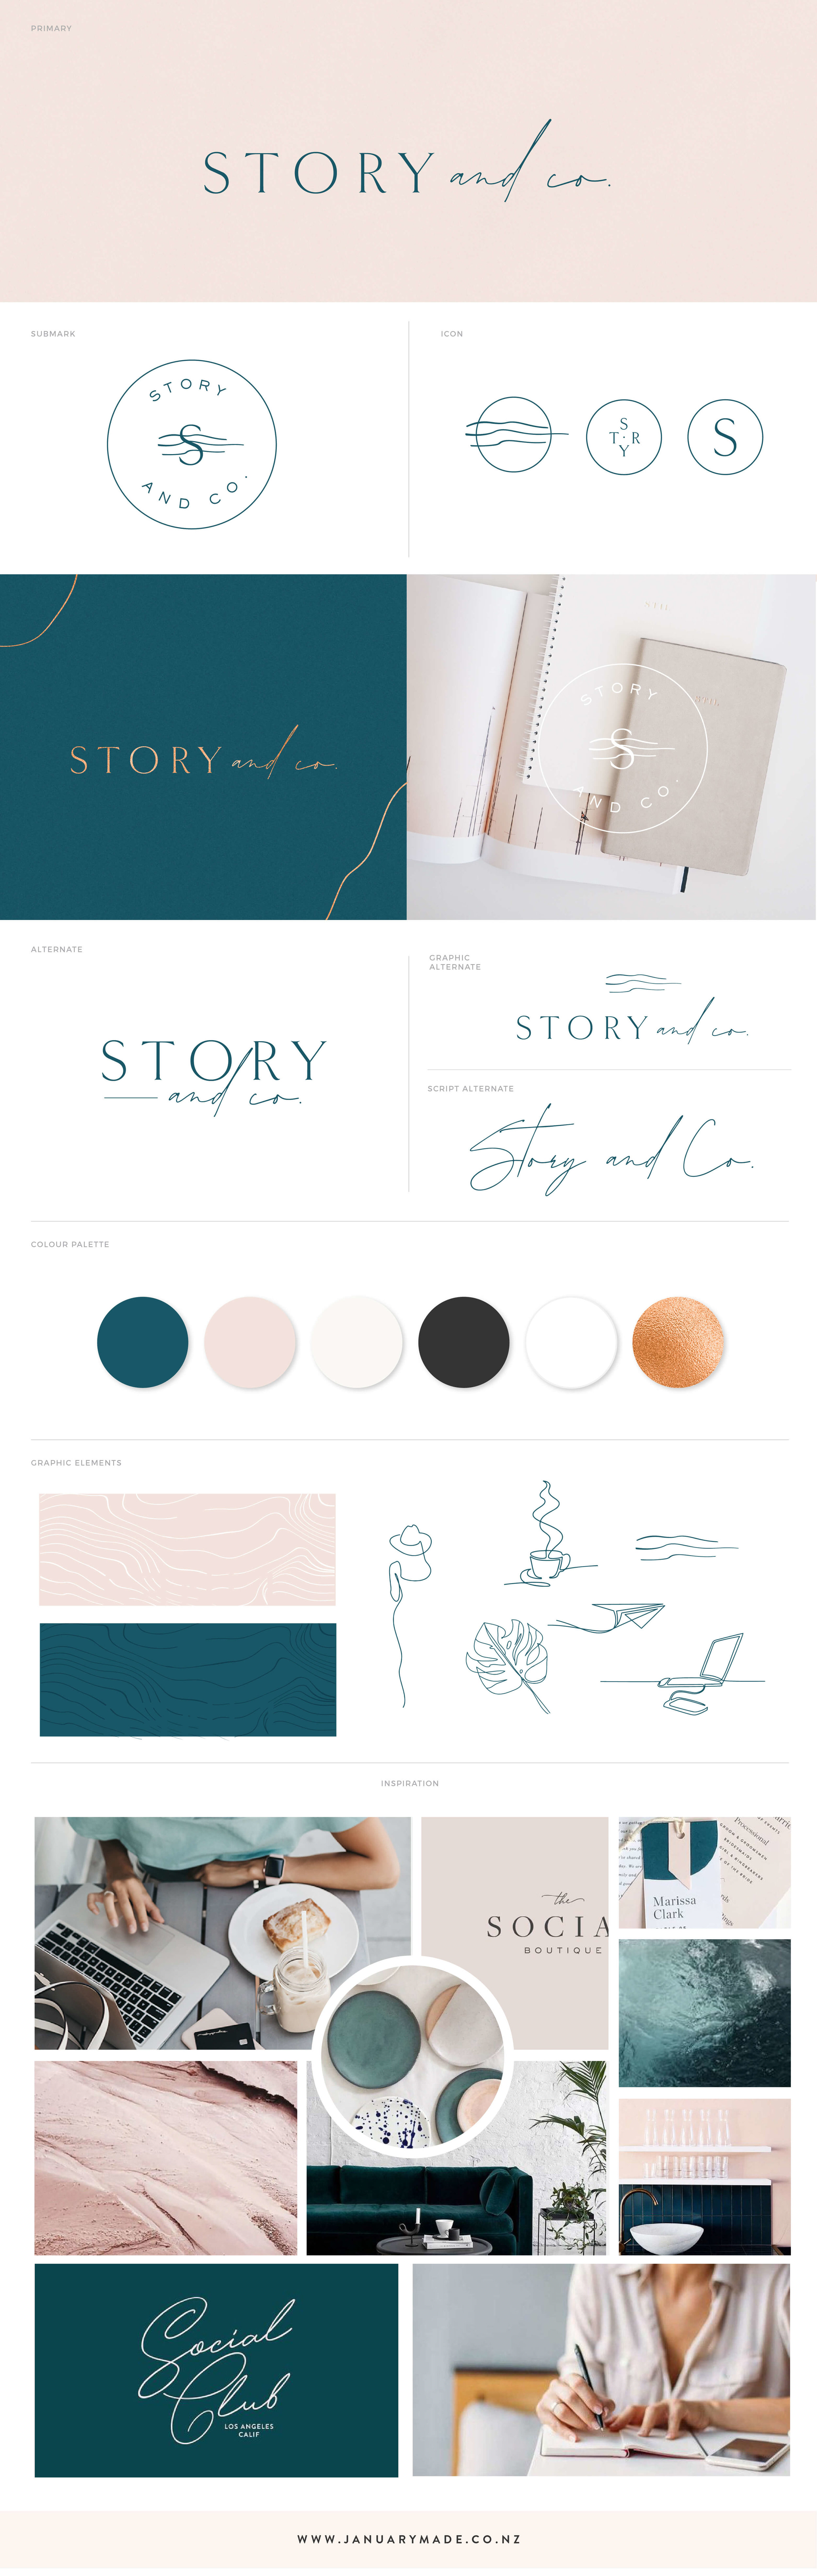 Story & Co. - January Made Design